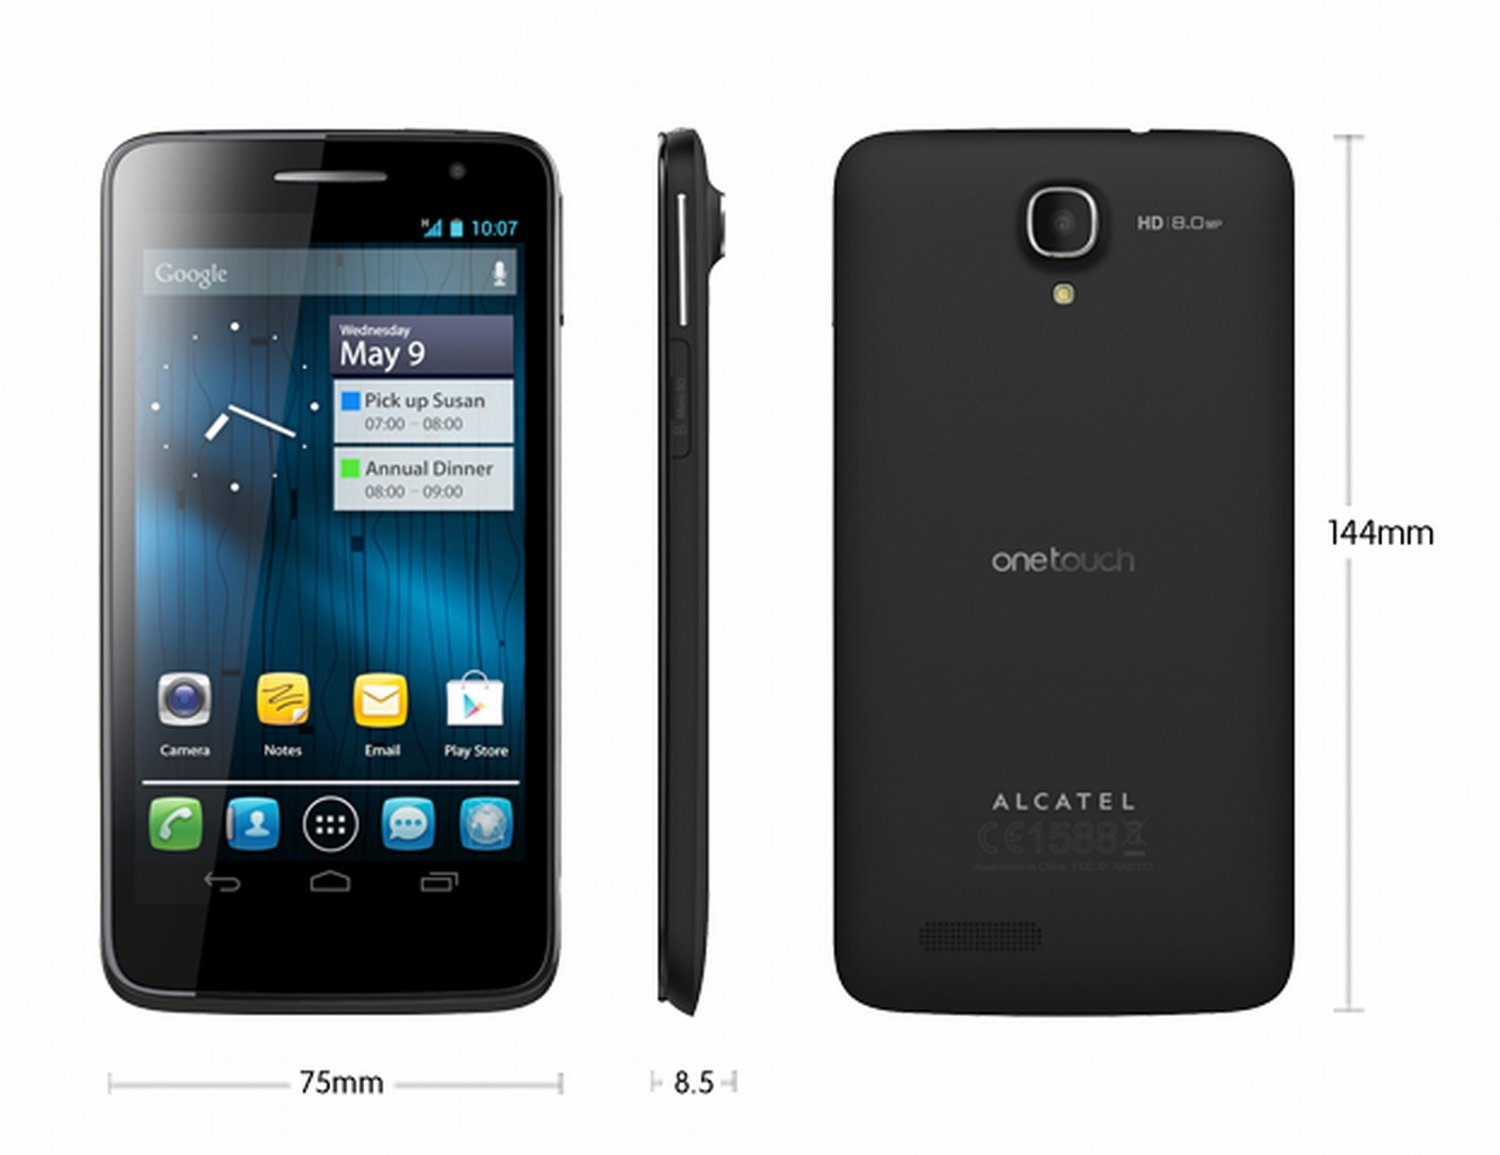 world 39 s first upload flash file alcatel one touch 8008d scribe5hd mt6589 100 tested latest. Black Bedroom Furniture Sets. Home Design Ideas